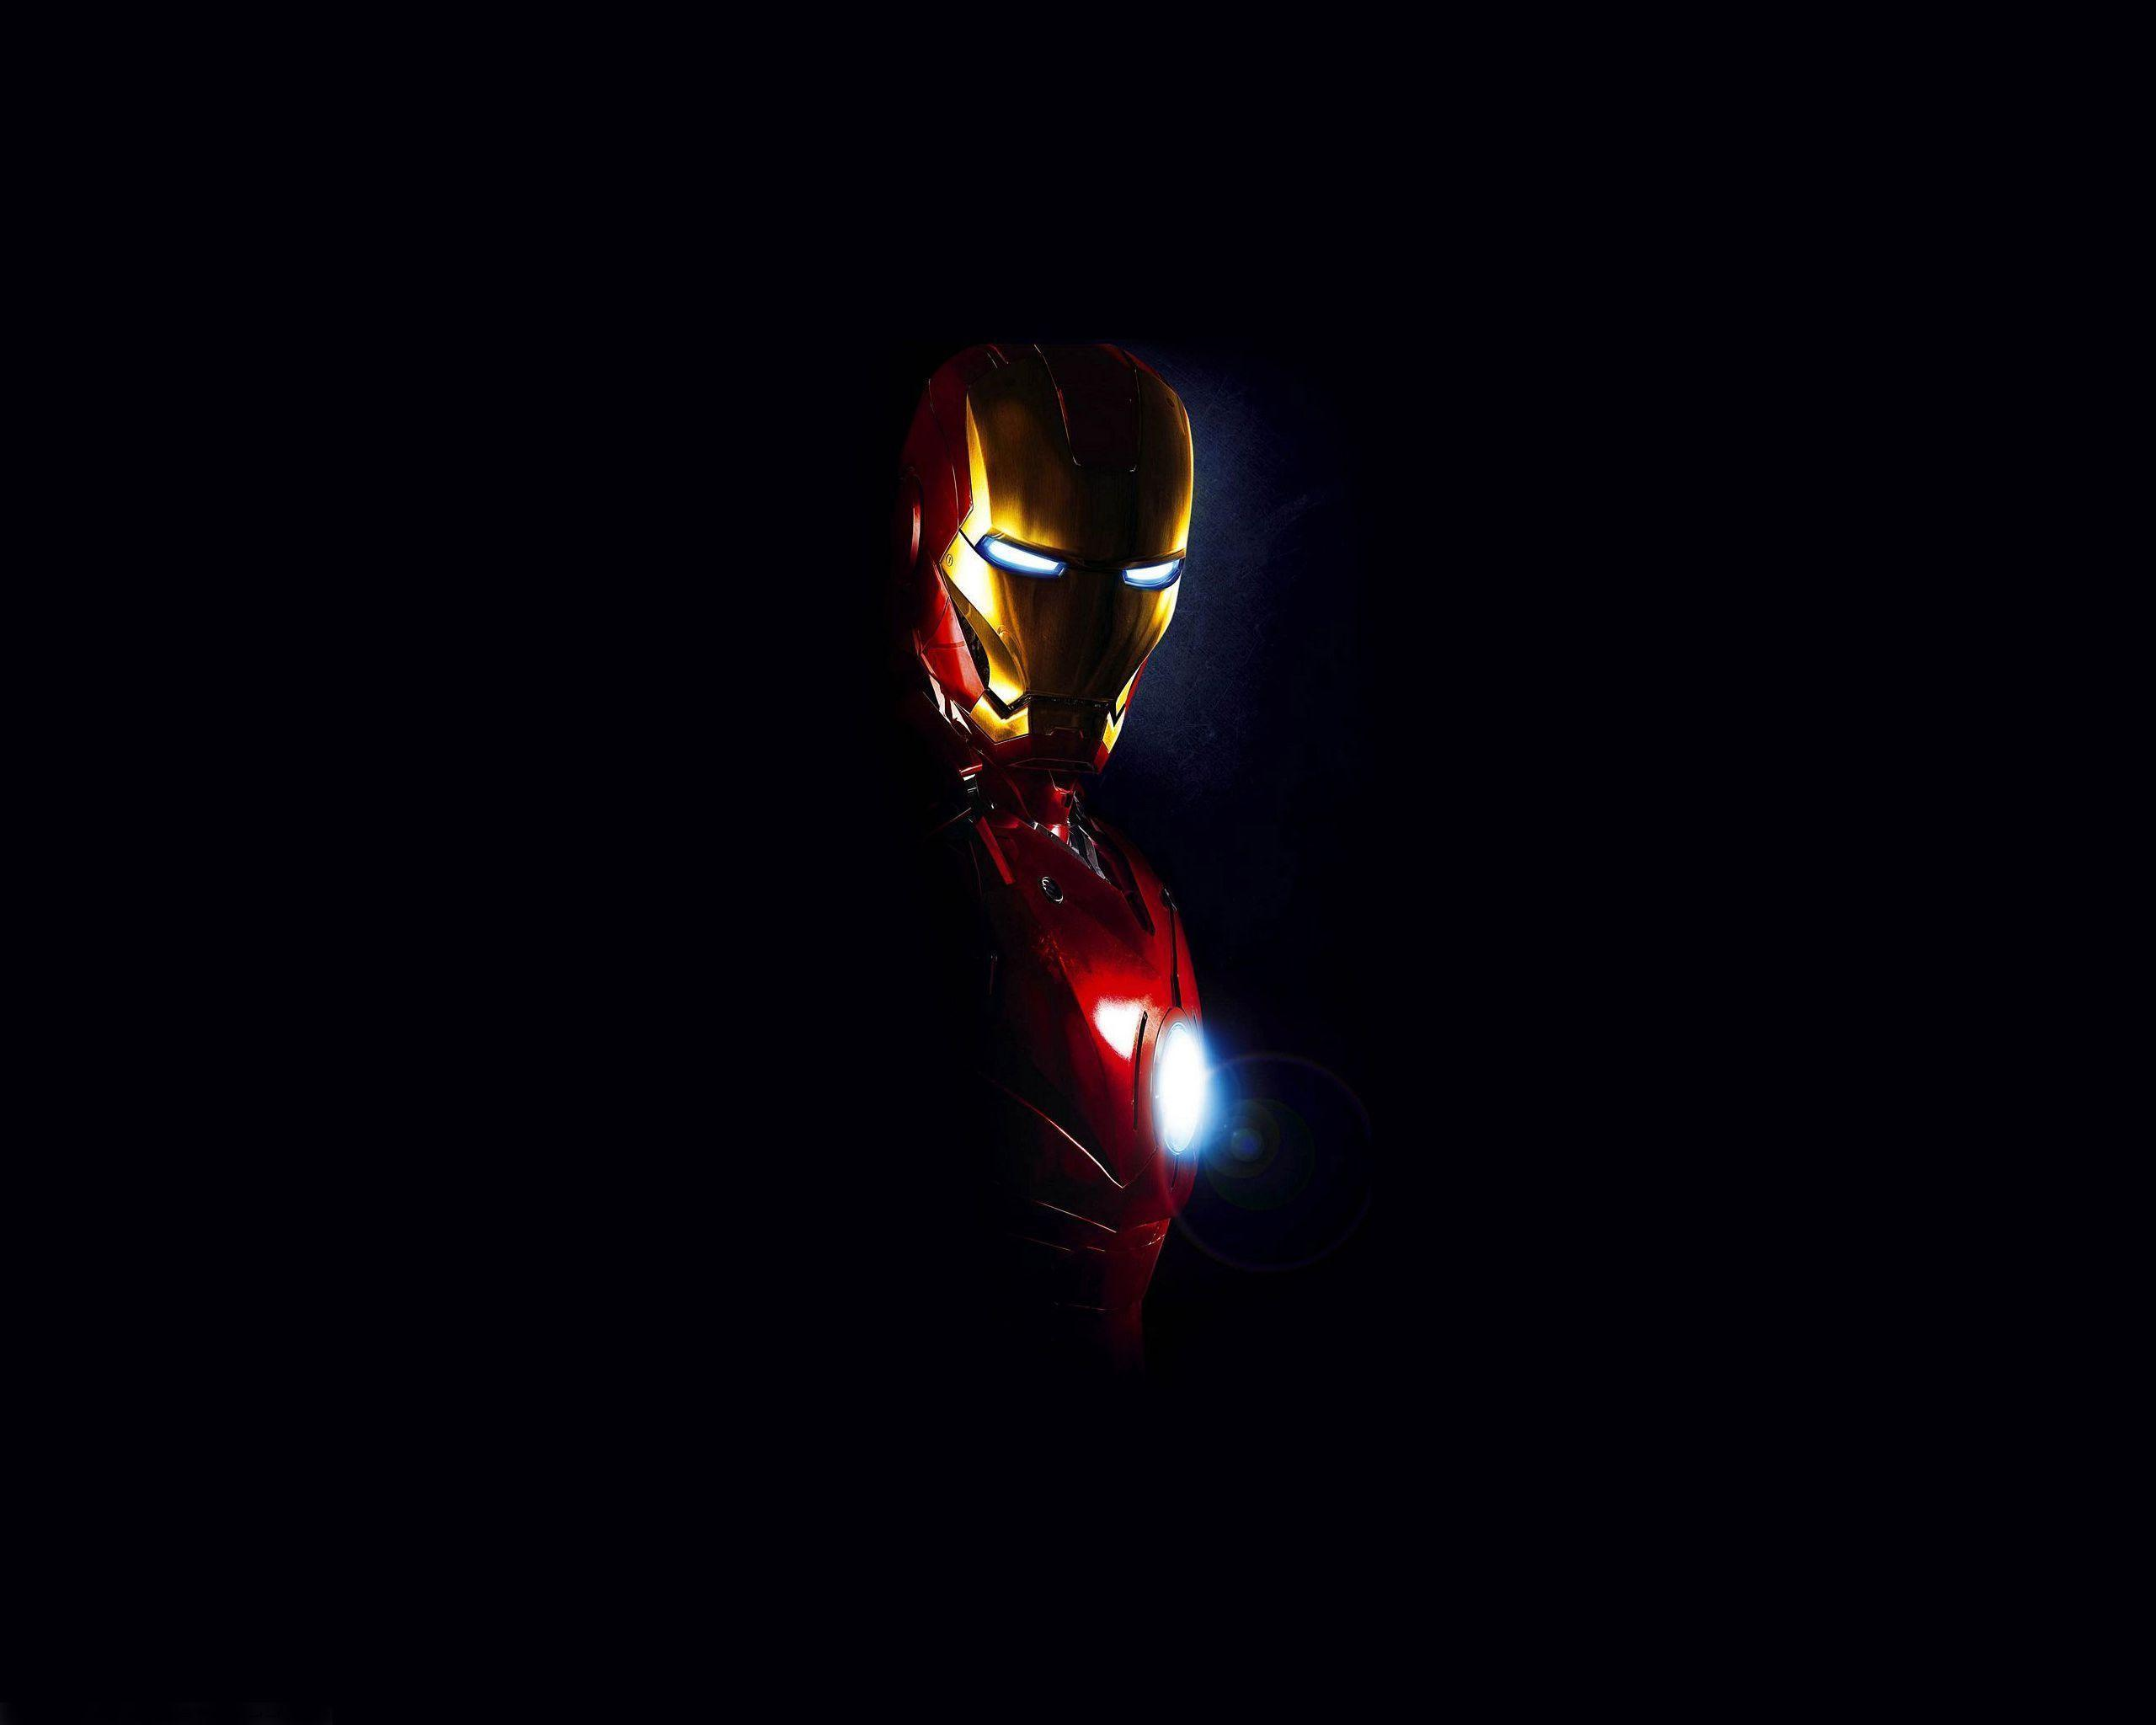 iron man movie cool wallpapers hd